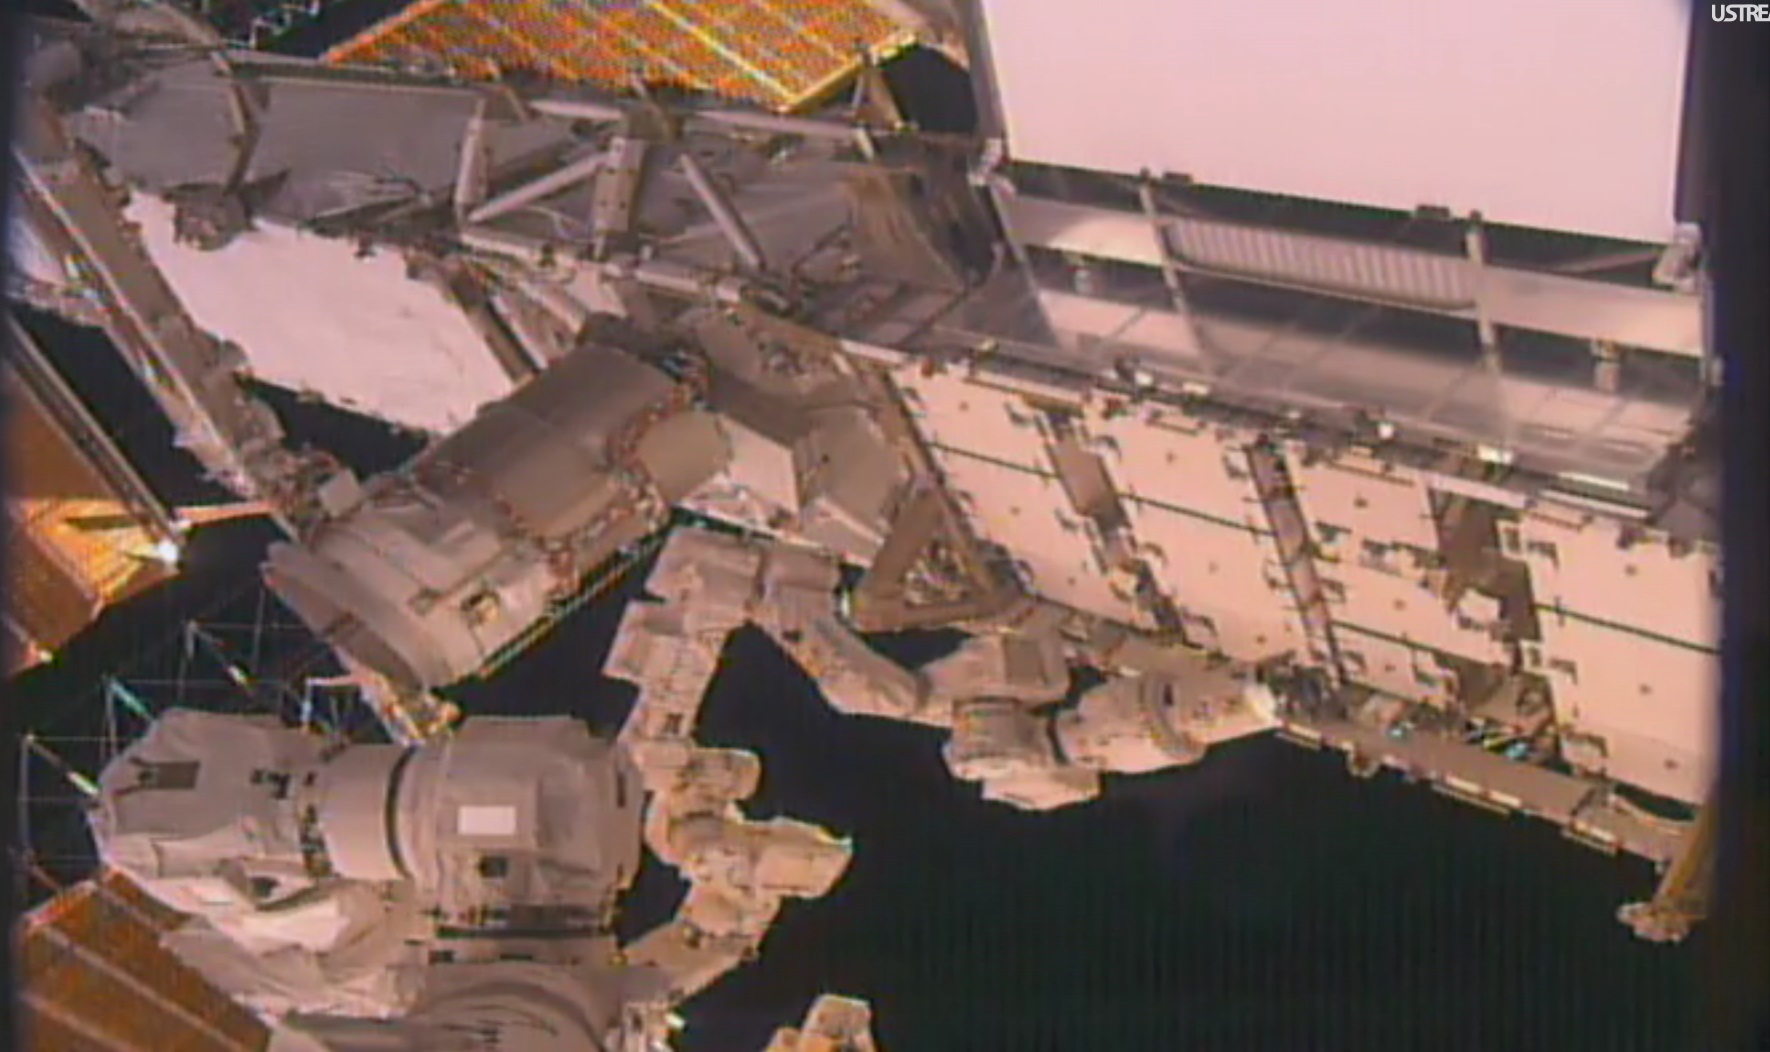 nasa iss robot new - photo #26